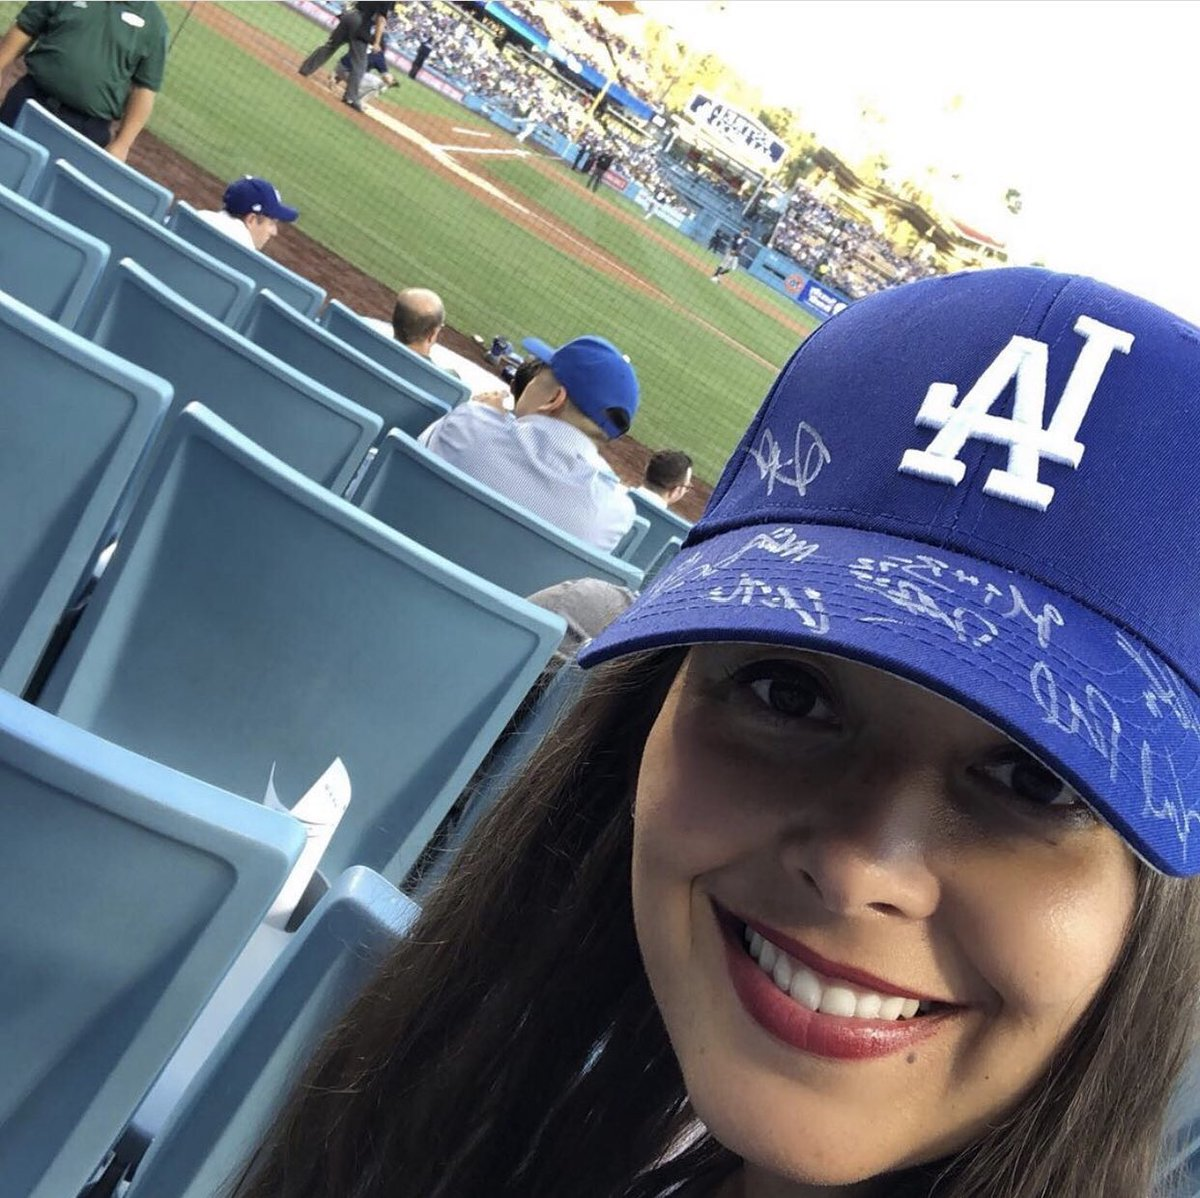 Take me OUT to the ball game. Take me OUT with the CROWD... ... root root for the home team... ⚾️ for it's one, two, three strikes your OUT #freedez #endcovid   #dodgers #dodgersnation #losangeles #longla #teamla #uclabiodesign #uclainnovates https://t.co/CLefE3VQEB